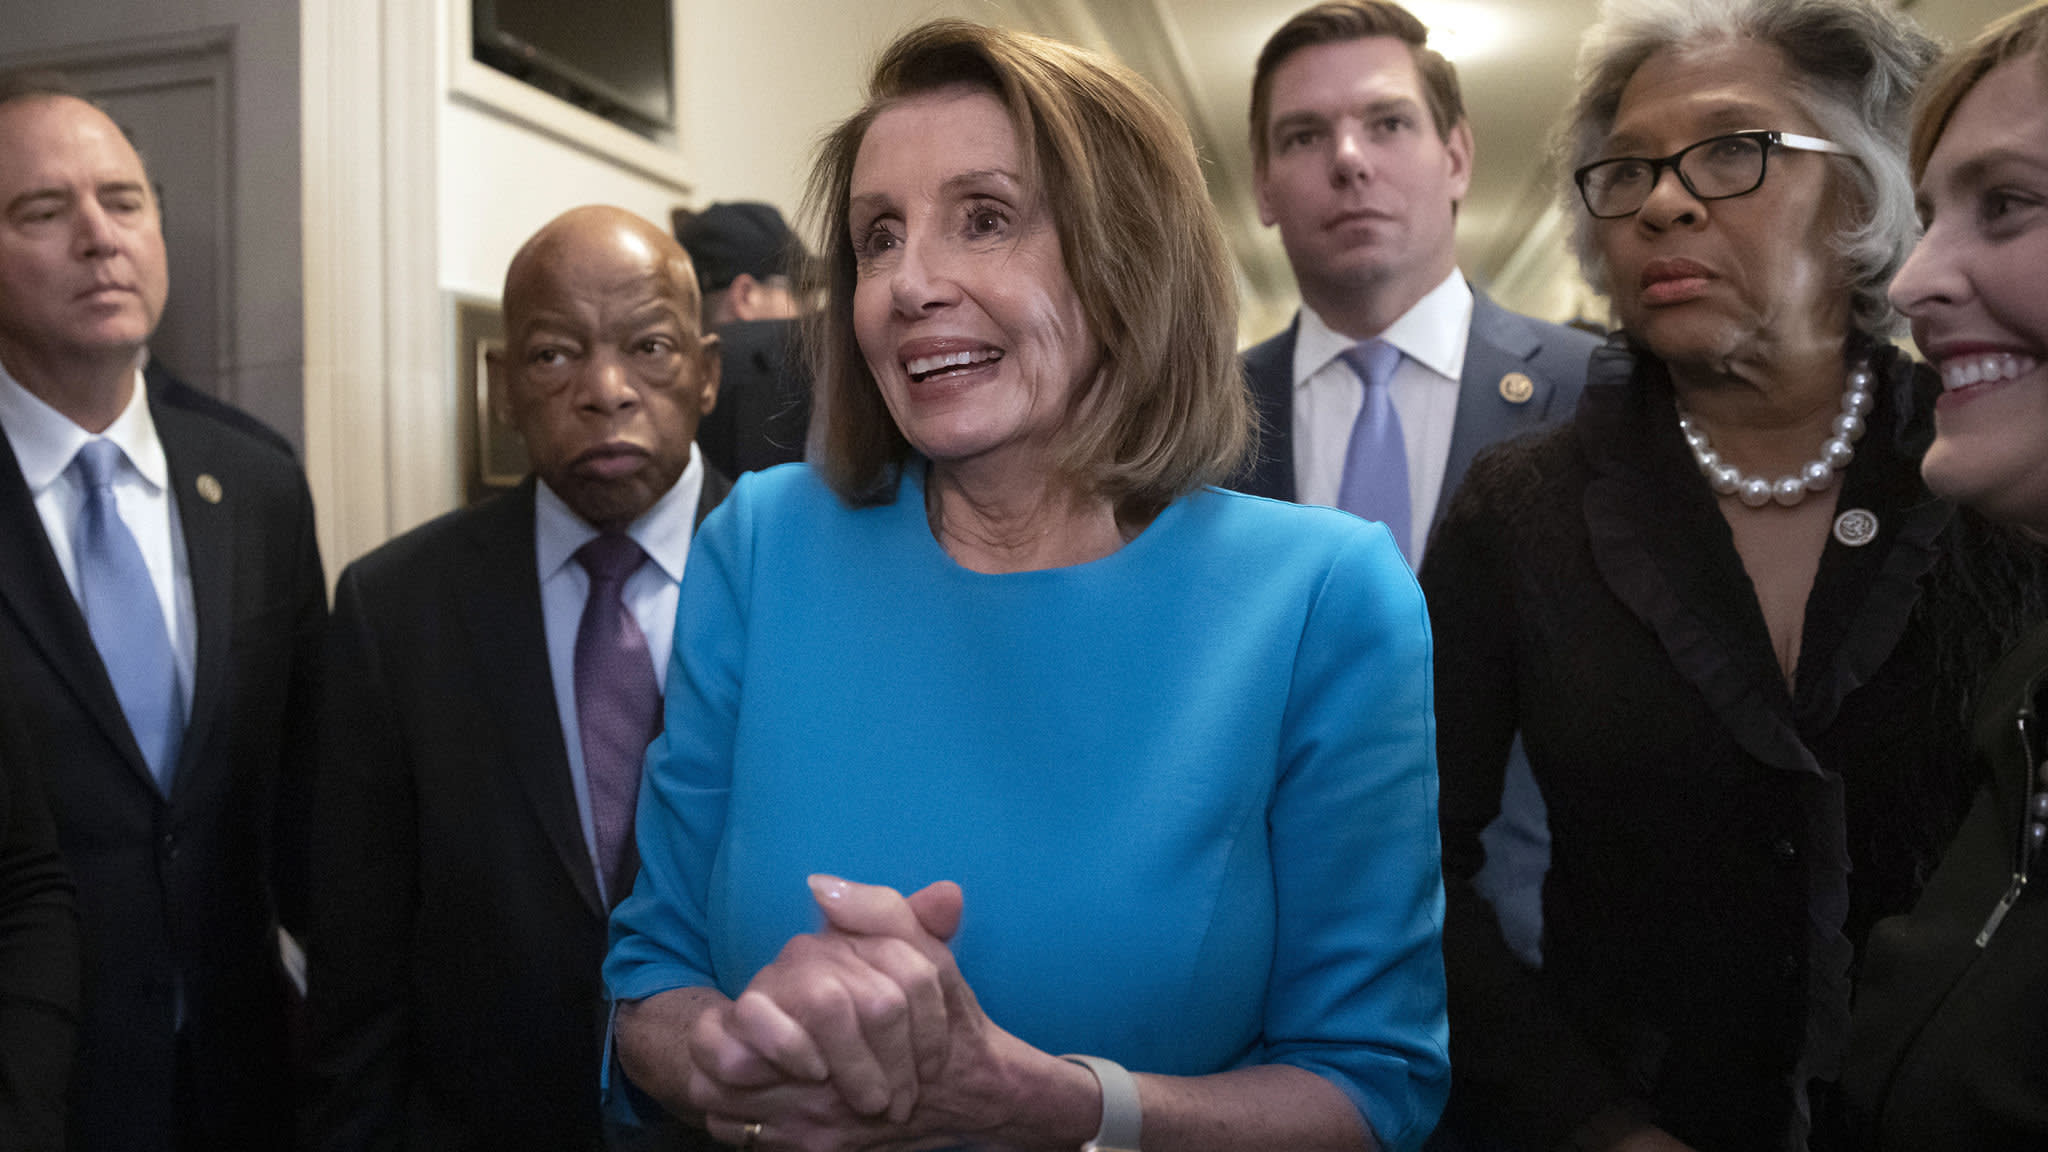 Nancy Pelosi clinches Democratic nod for House speakership